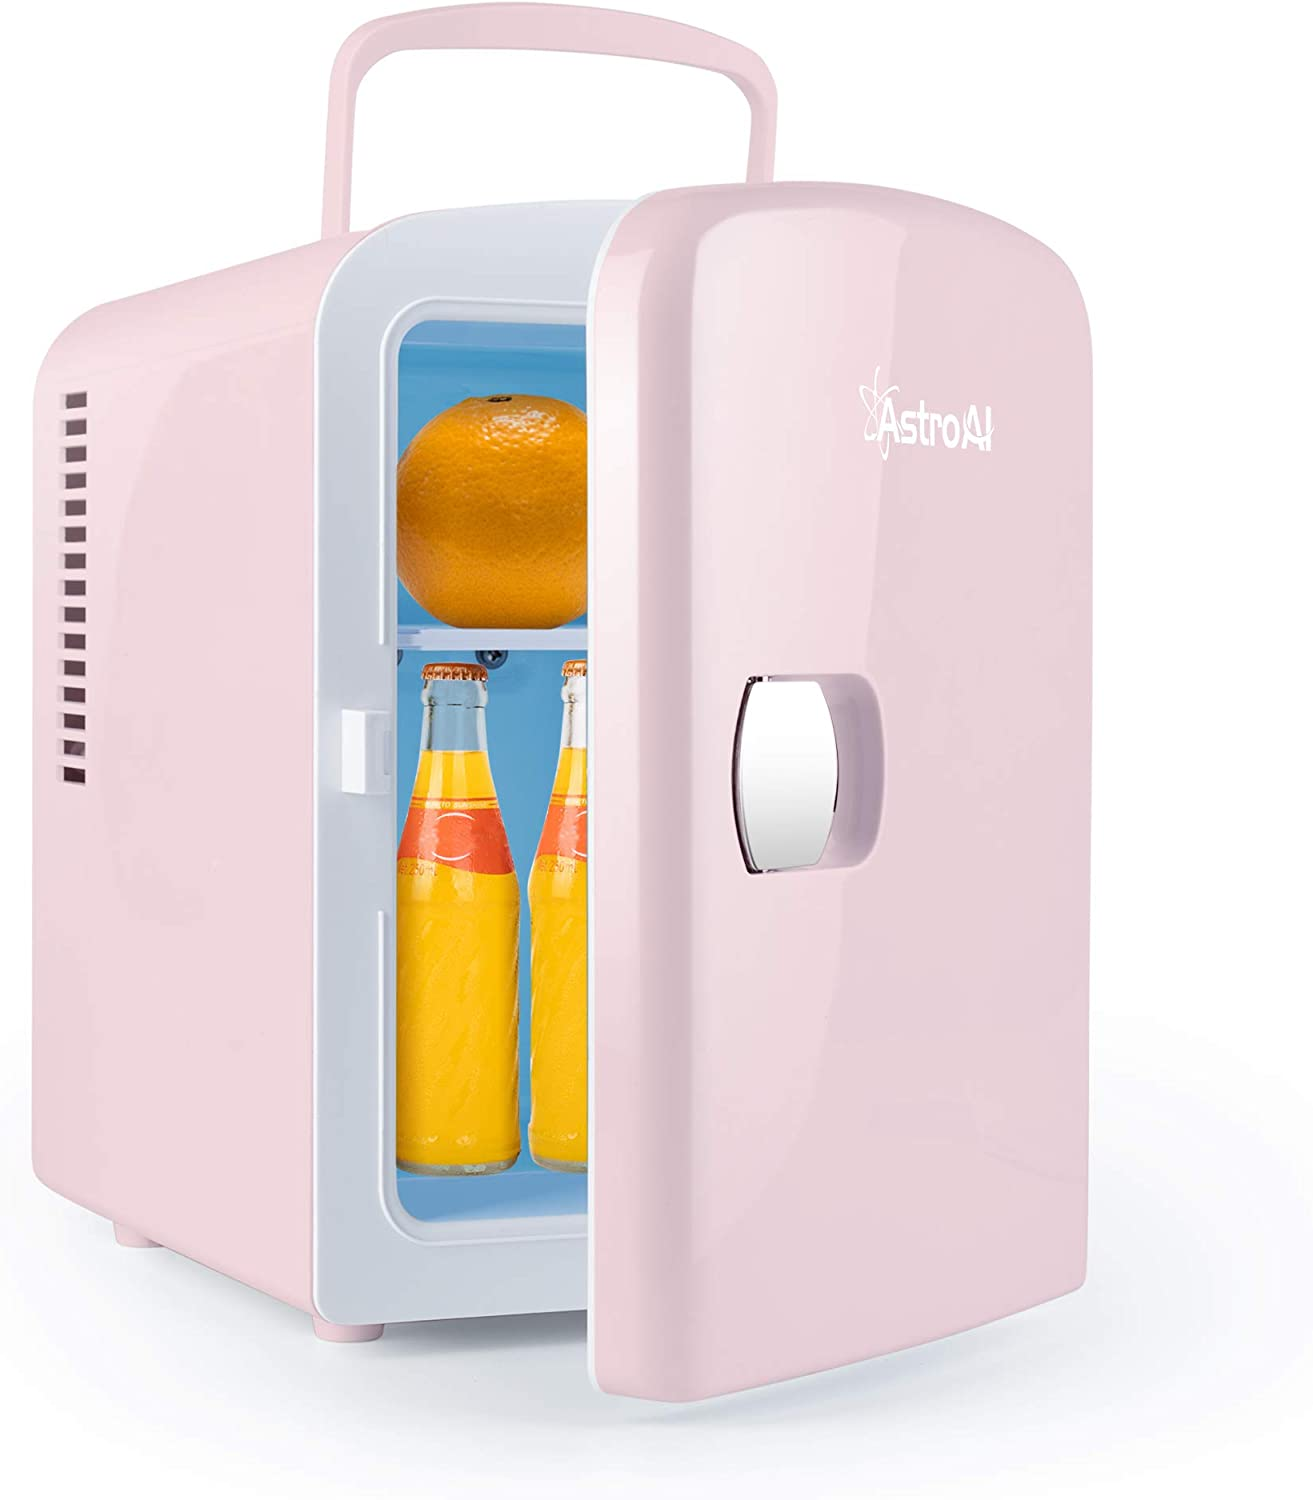 AstroAI Mini Fridge 4 Liter/6 Can AC/DC Portable Thermoelectric Cooler and Warmer for Skincare, Foods, Medications, Home and Travel (Pink) (Renewed)